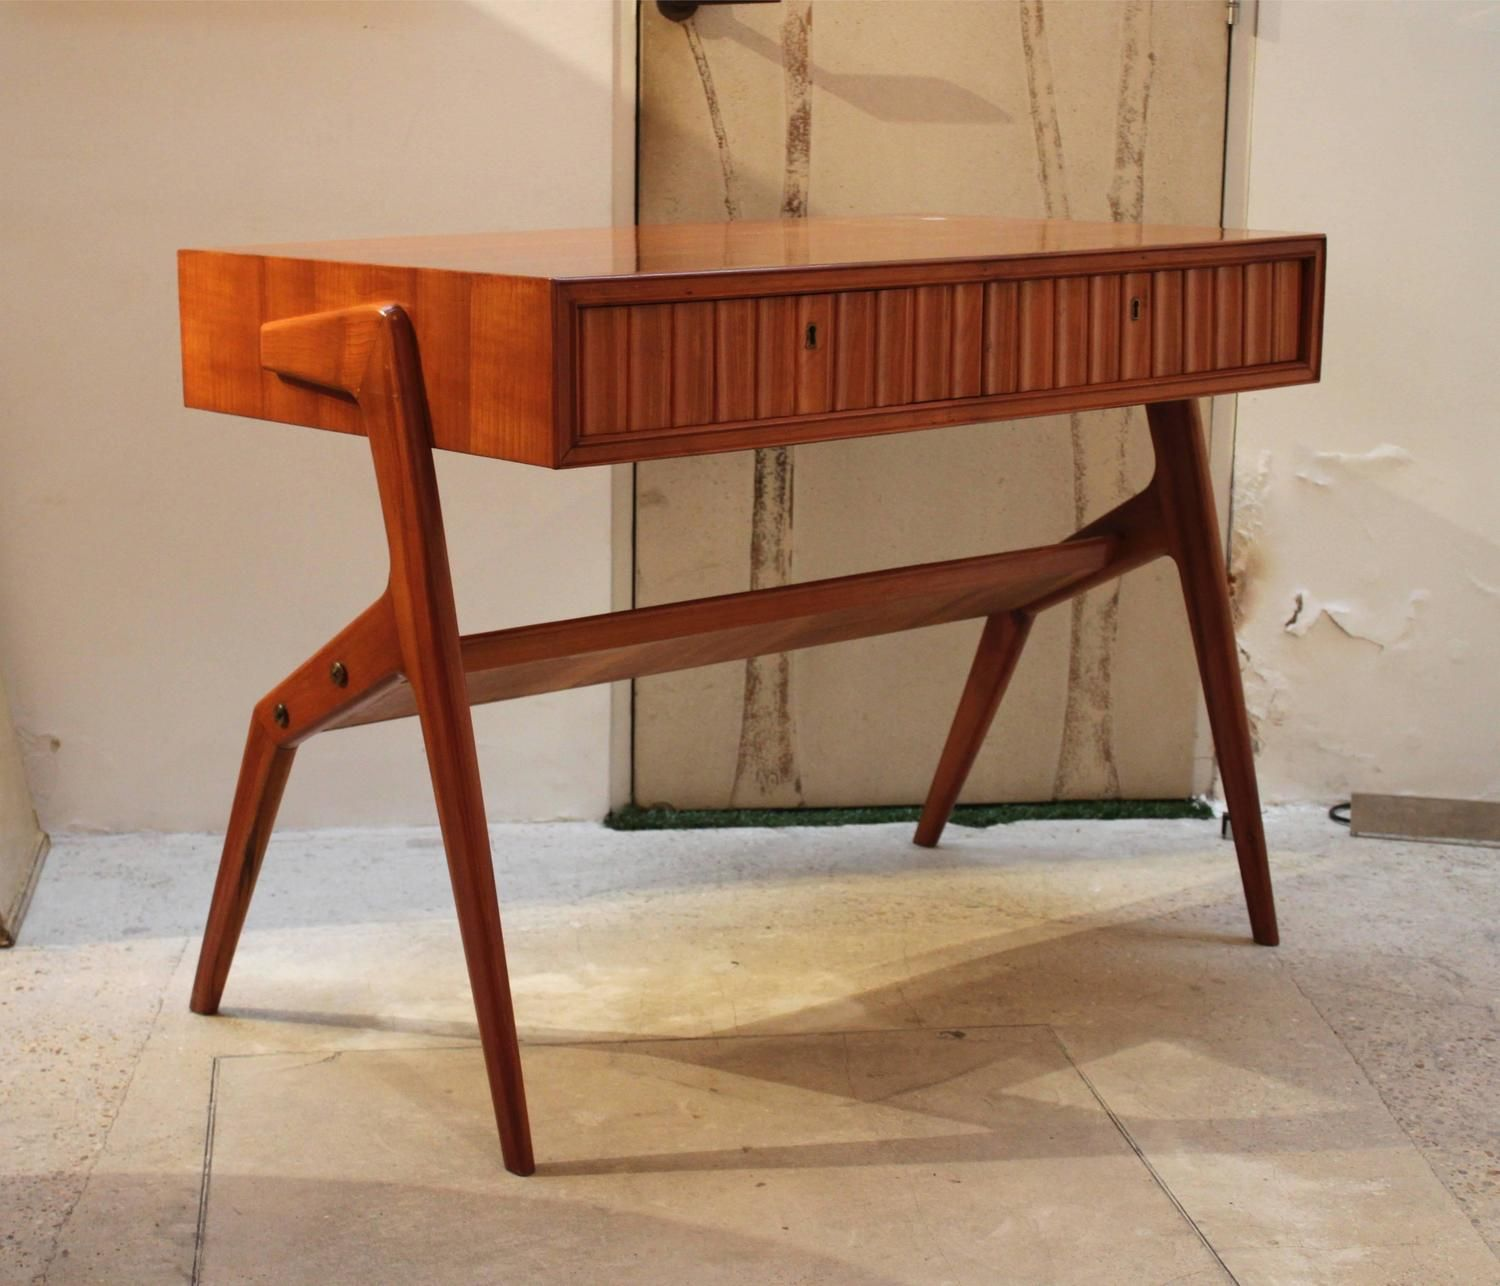 Vintage Hall Table Mid Century Retro Vintage Hall Table Console Writing Desk In The